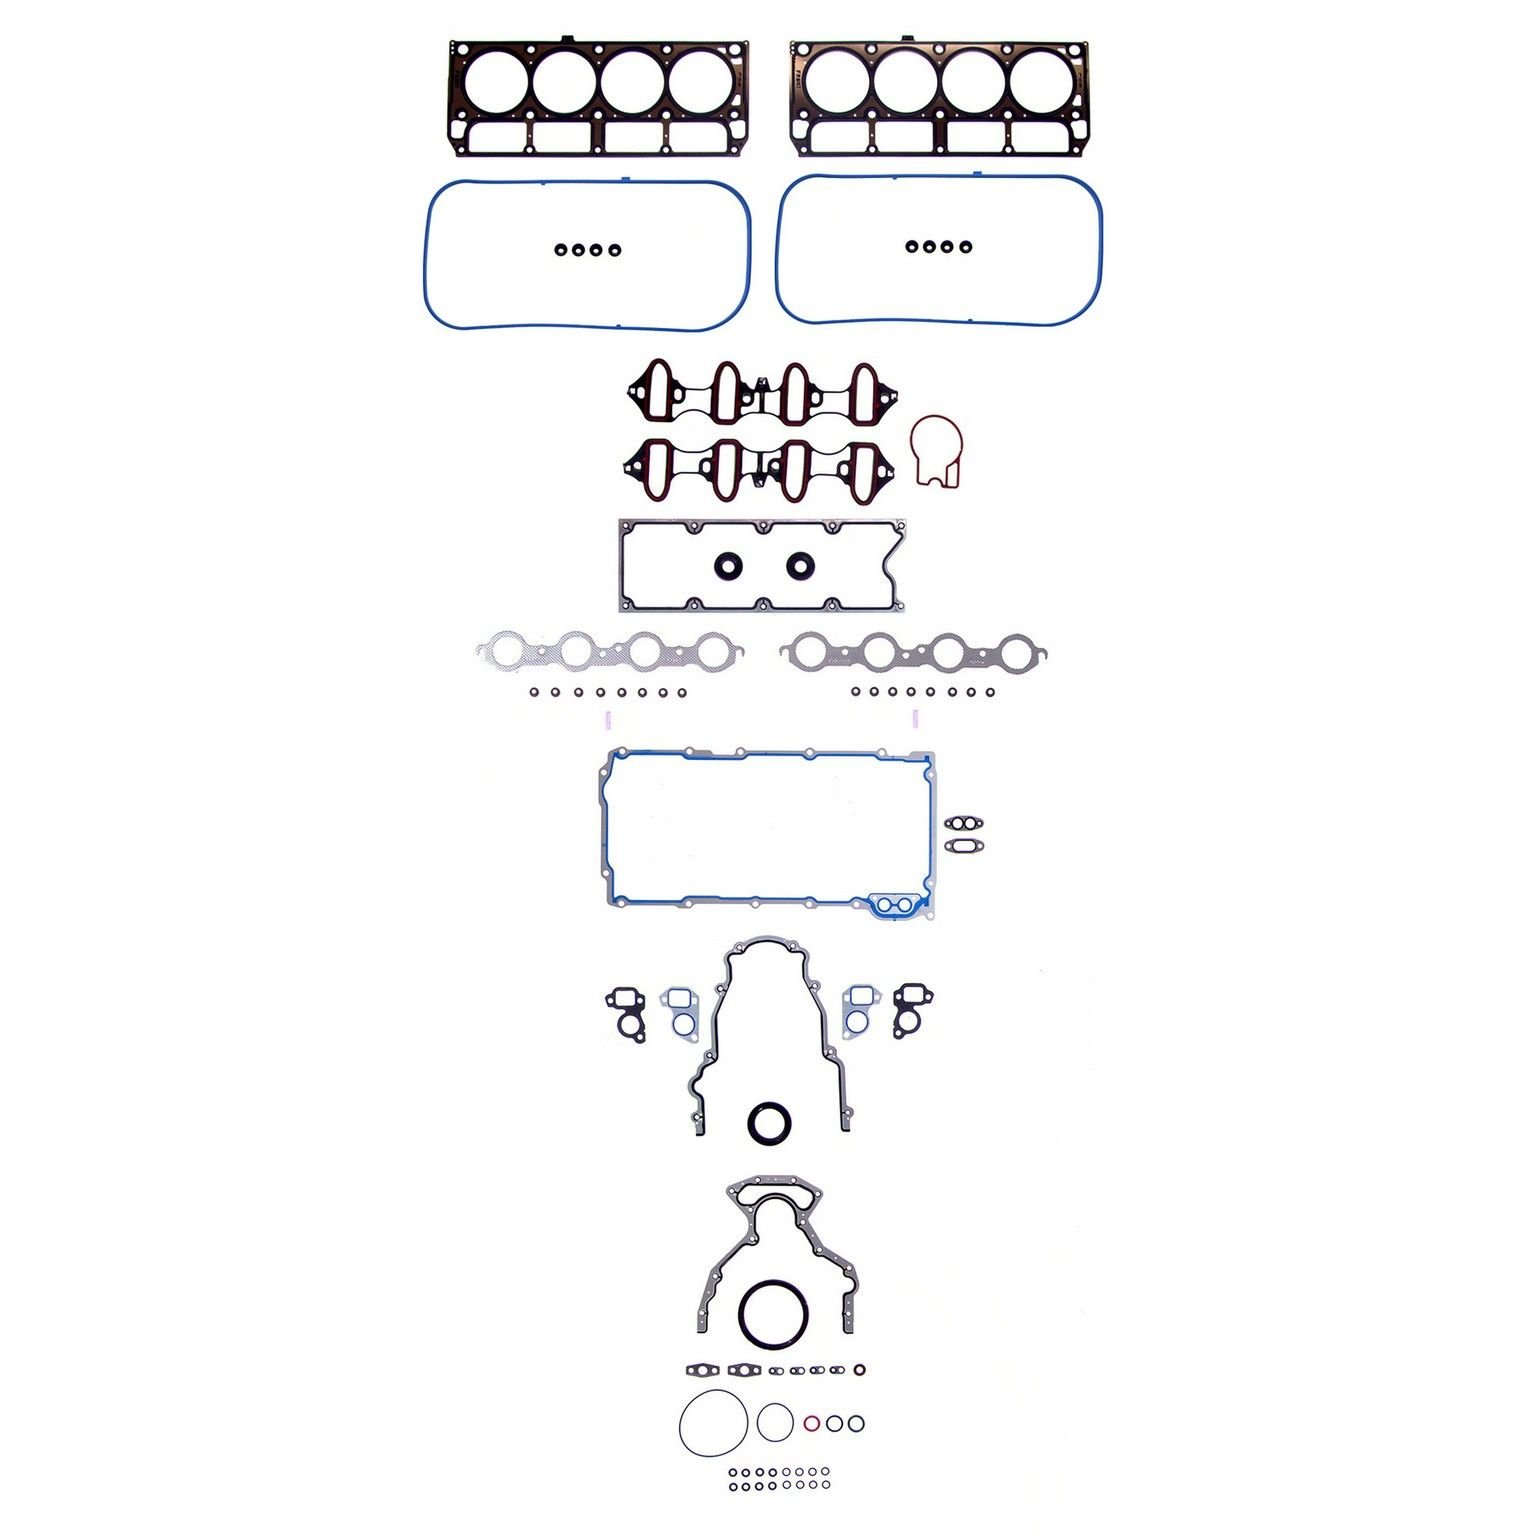 Gmc Yukon Xl 2500 Engine Gasket Set Replacement Sealed Power Go 2001 Denali Diagram 8 Cyl 60l 260 1954 1st Design Positive Type Valve Stem Seals Head Bolts Not Incl